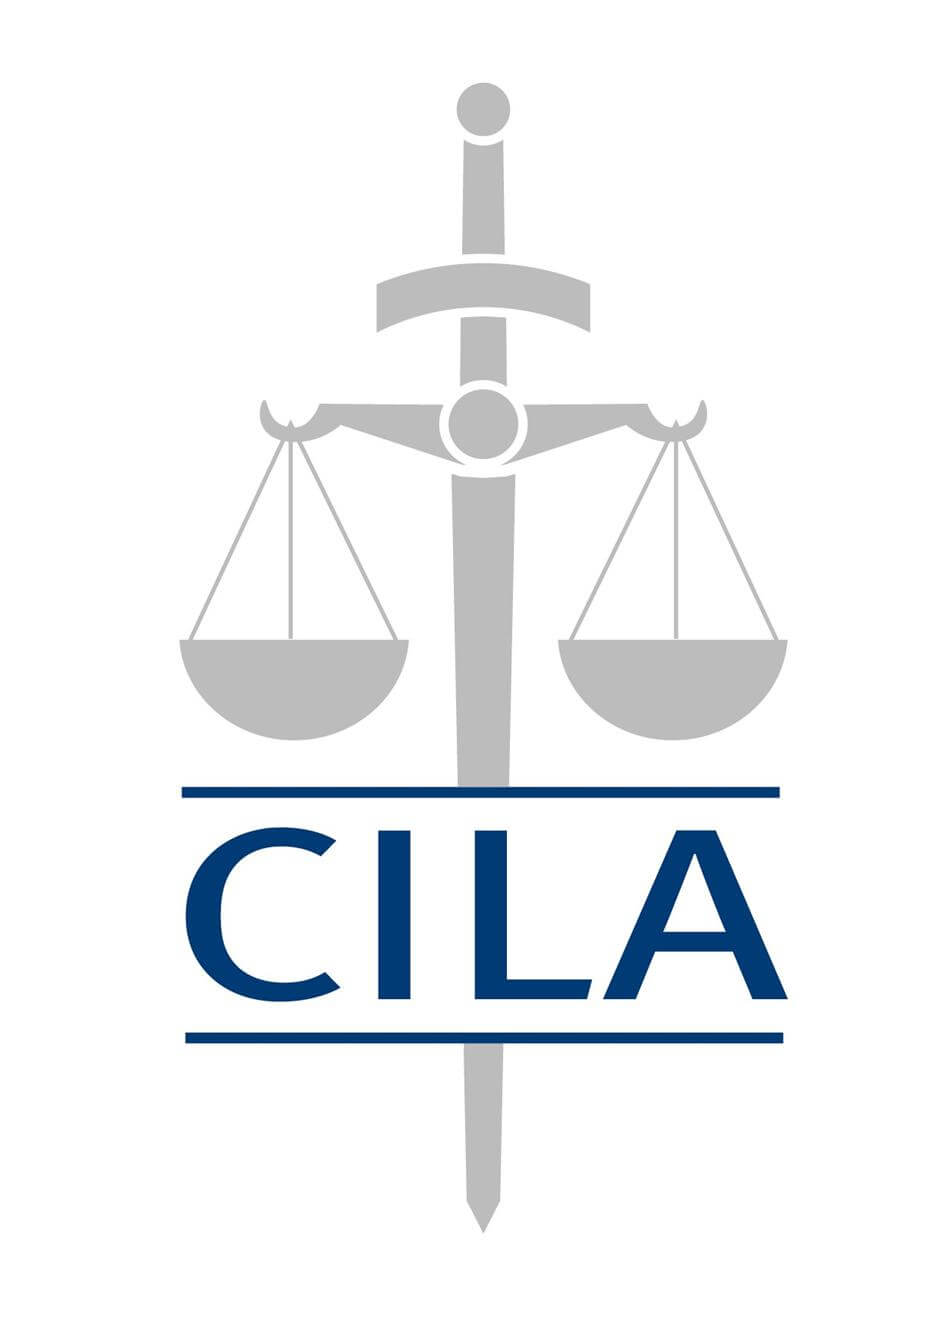 CILA Logo - Chartered Institute of Loss Adjusters